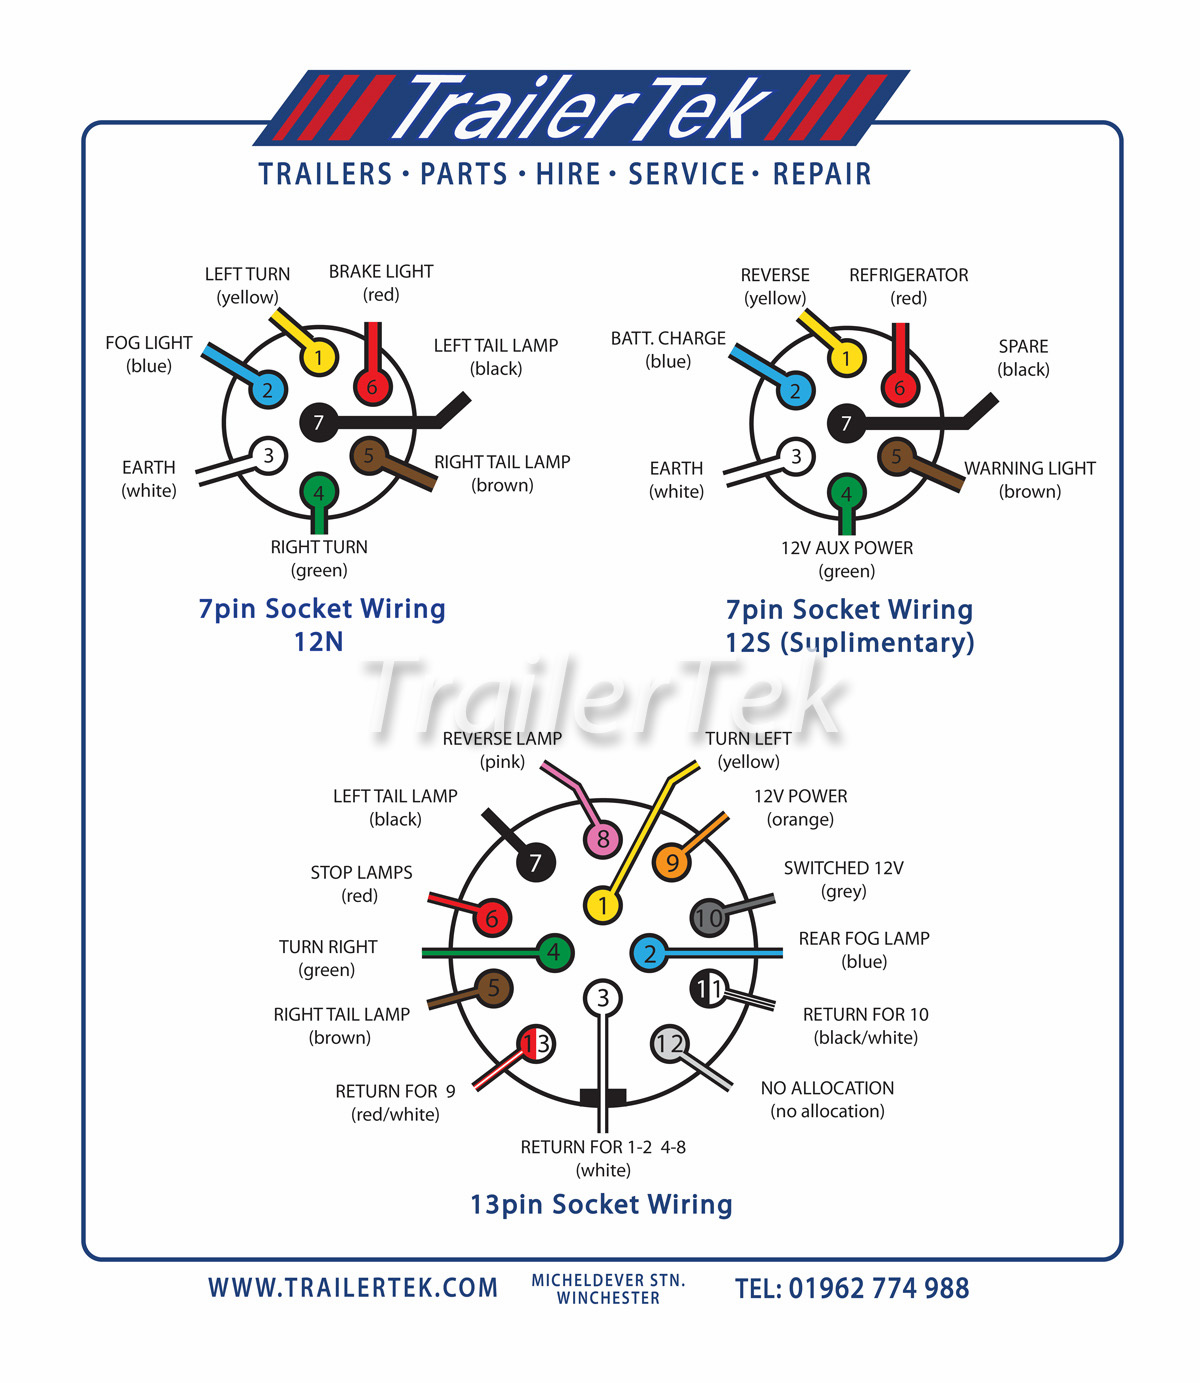 7 Pin Trailer Socket Wiring Diagrams Dodge Wire Harness Diagram Towbar Fitting Trailertek Ireland